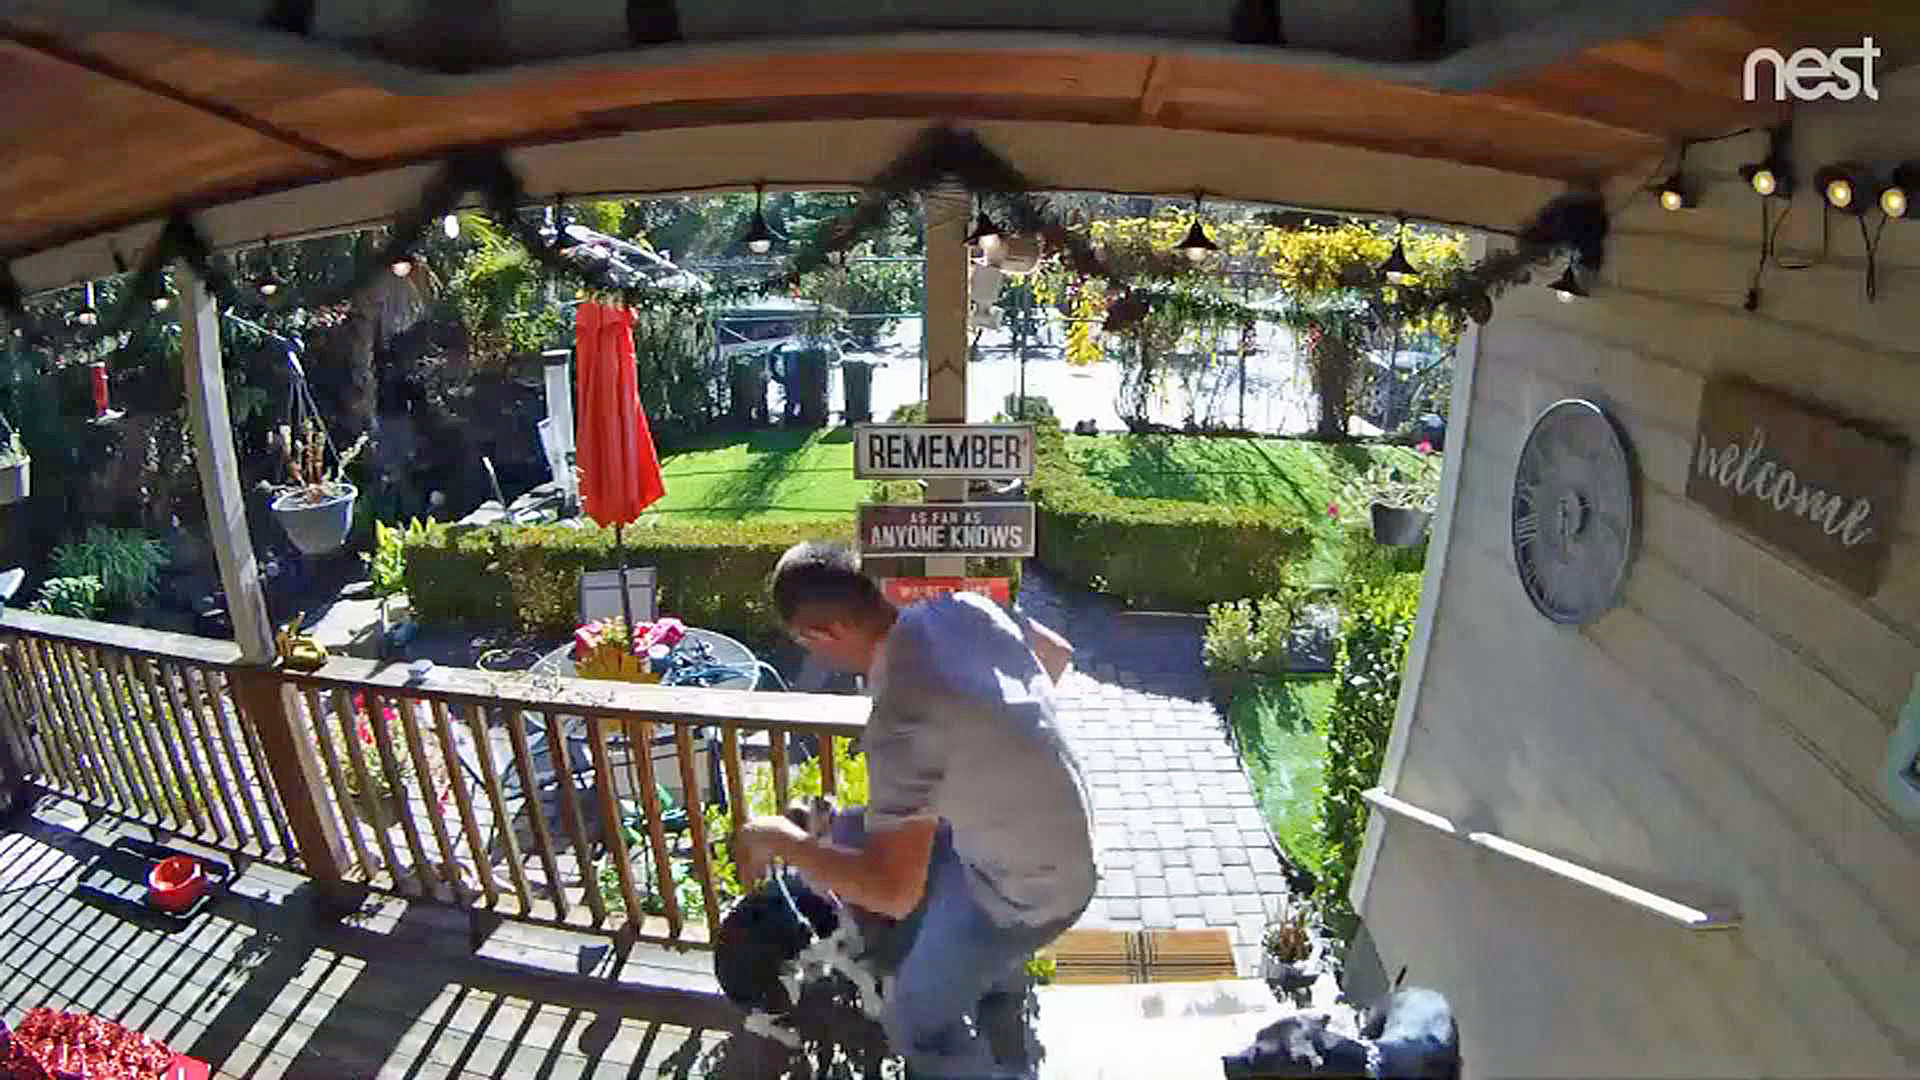 A screen shot from home security video shows a dog walker mistreating a dog at a Danville family's home.